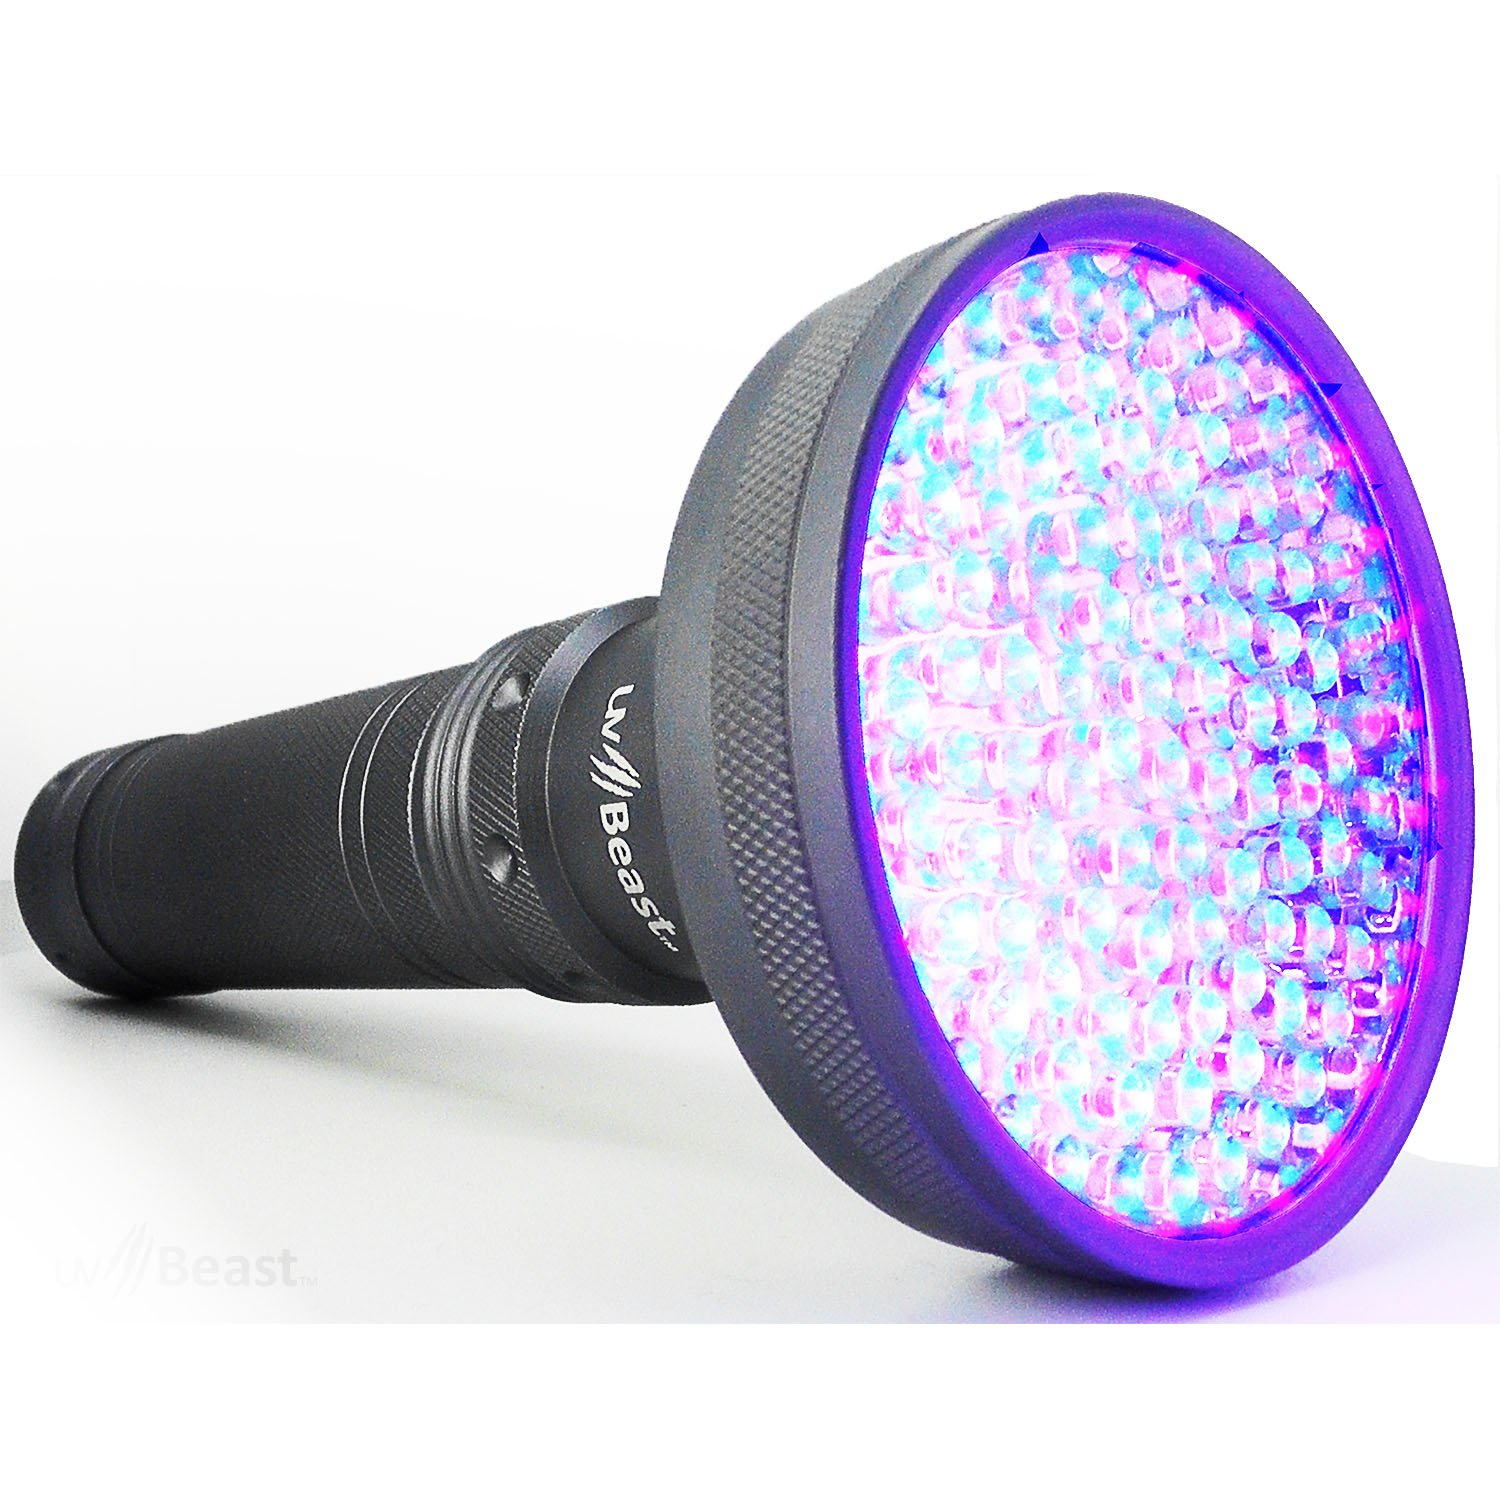 uvBeast NEW VERSION 2 - Black Light UV Flashlight with HIGH DEFINITION 100 LED with Flood Effect 385-395nm UV Best for Commercial/Domestic Use Works Even in Ambient Light - Registered Design